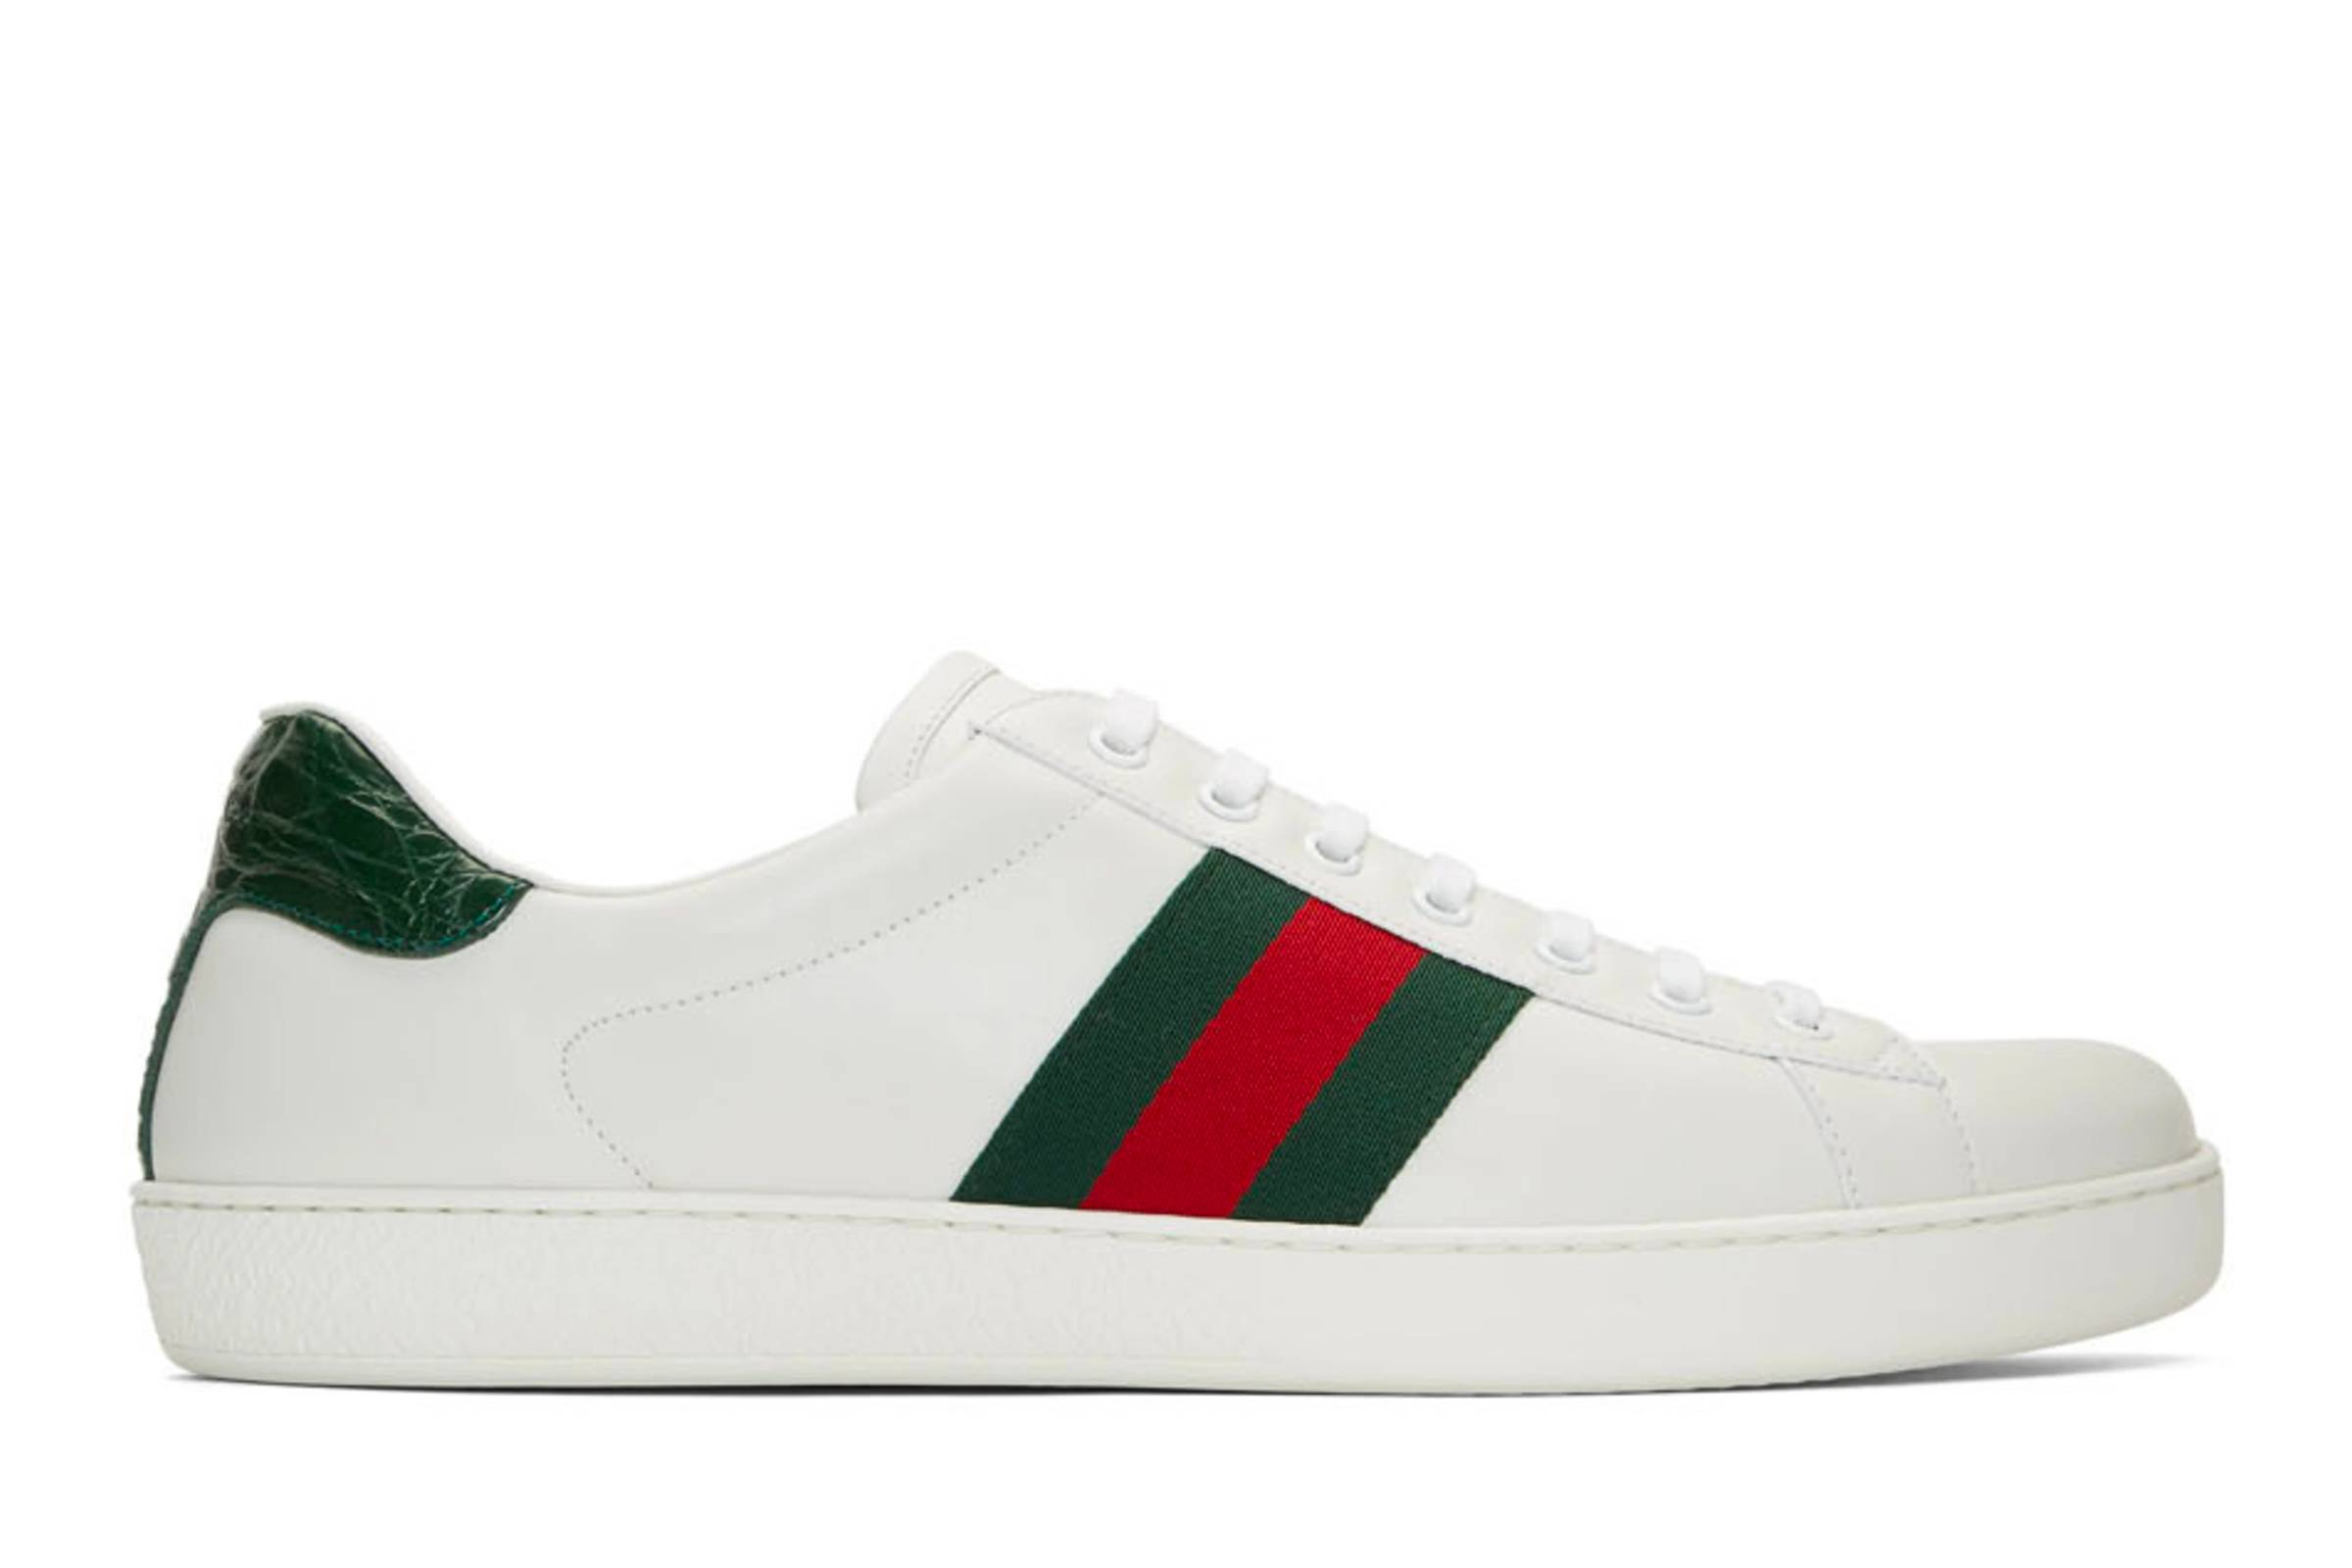 Gucci Men's Ace Sneaker